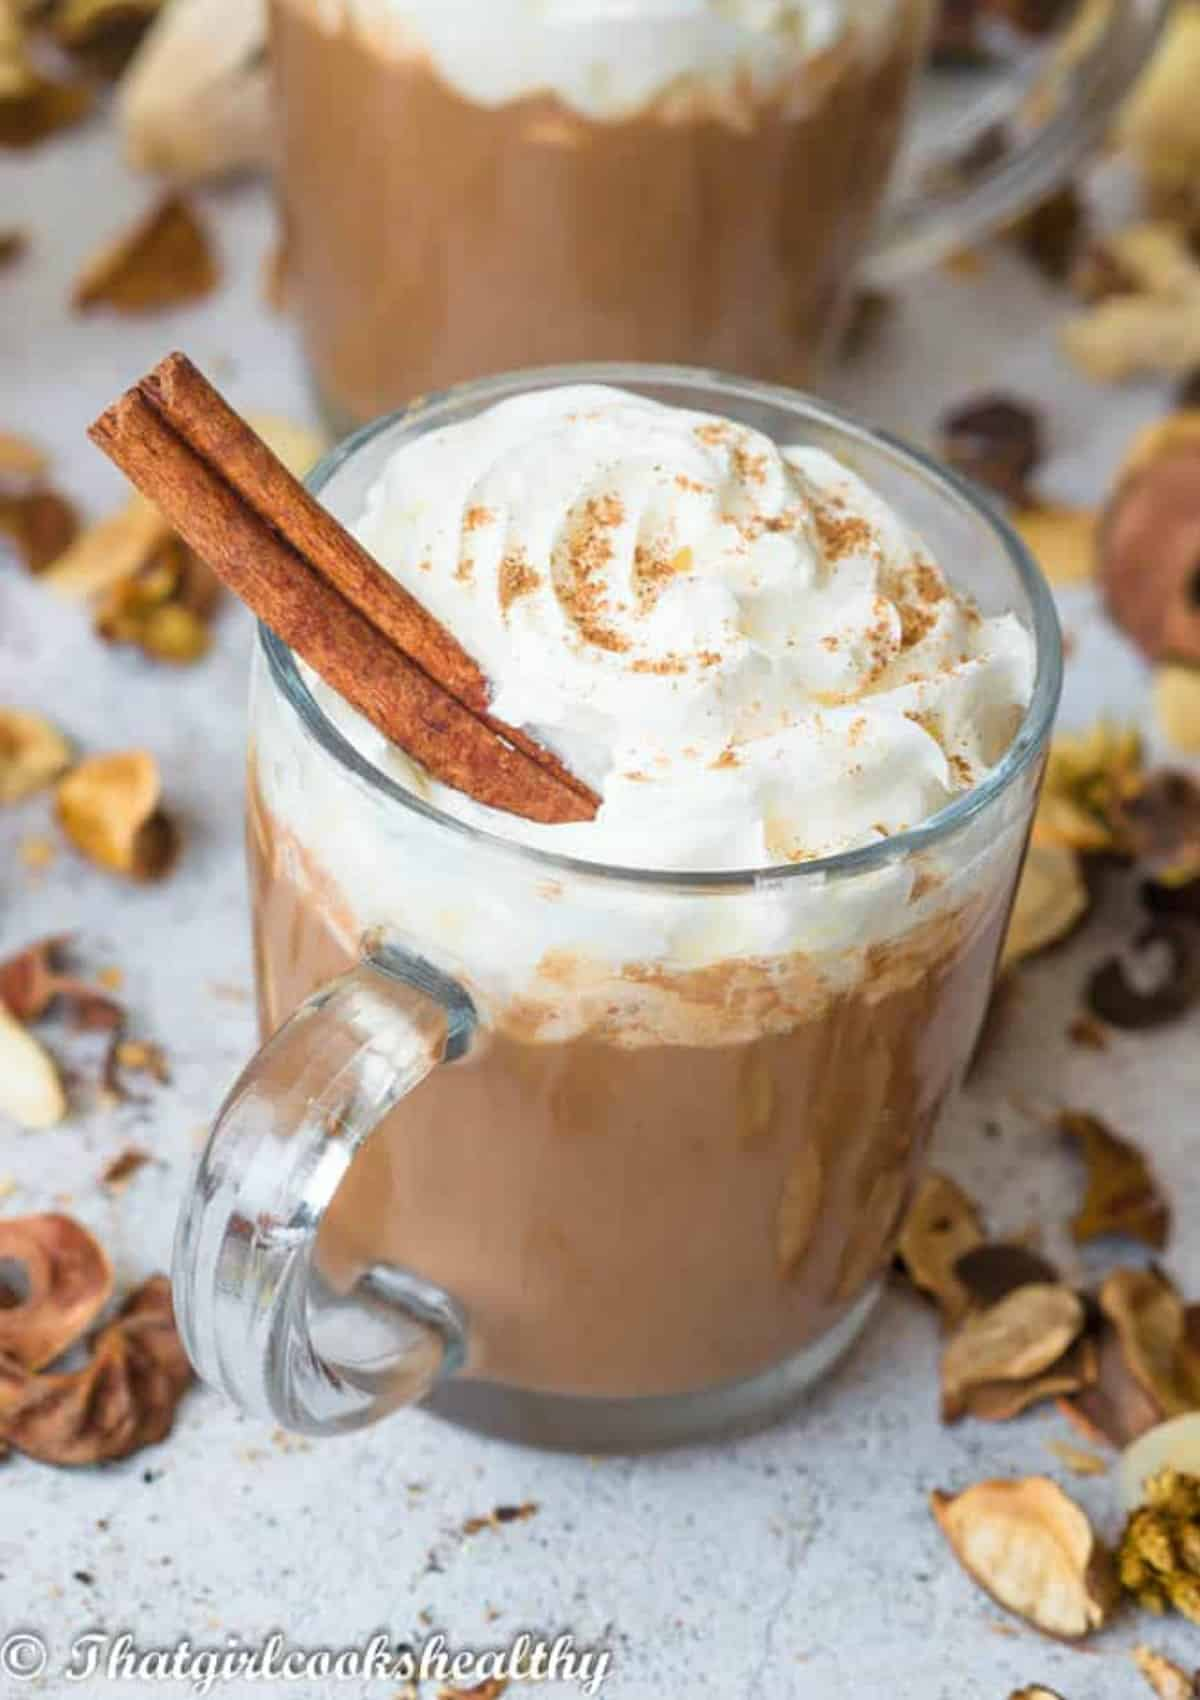 Cream topping on hot chocolate